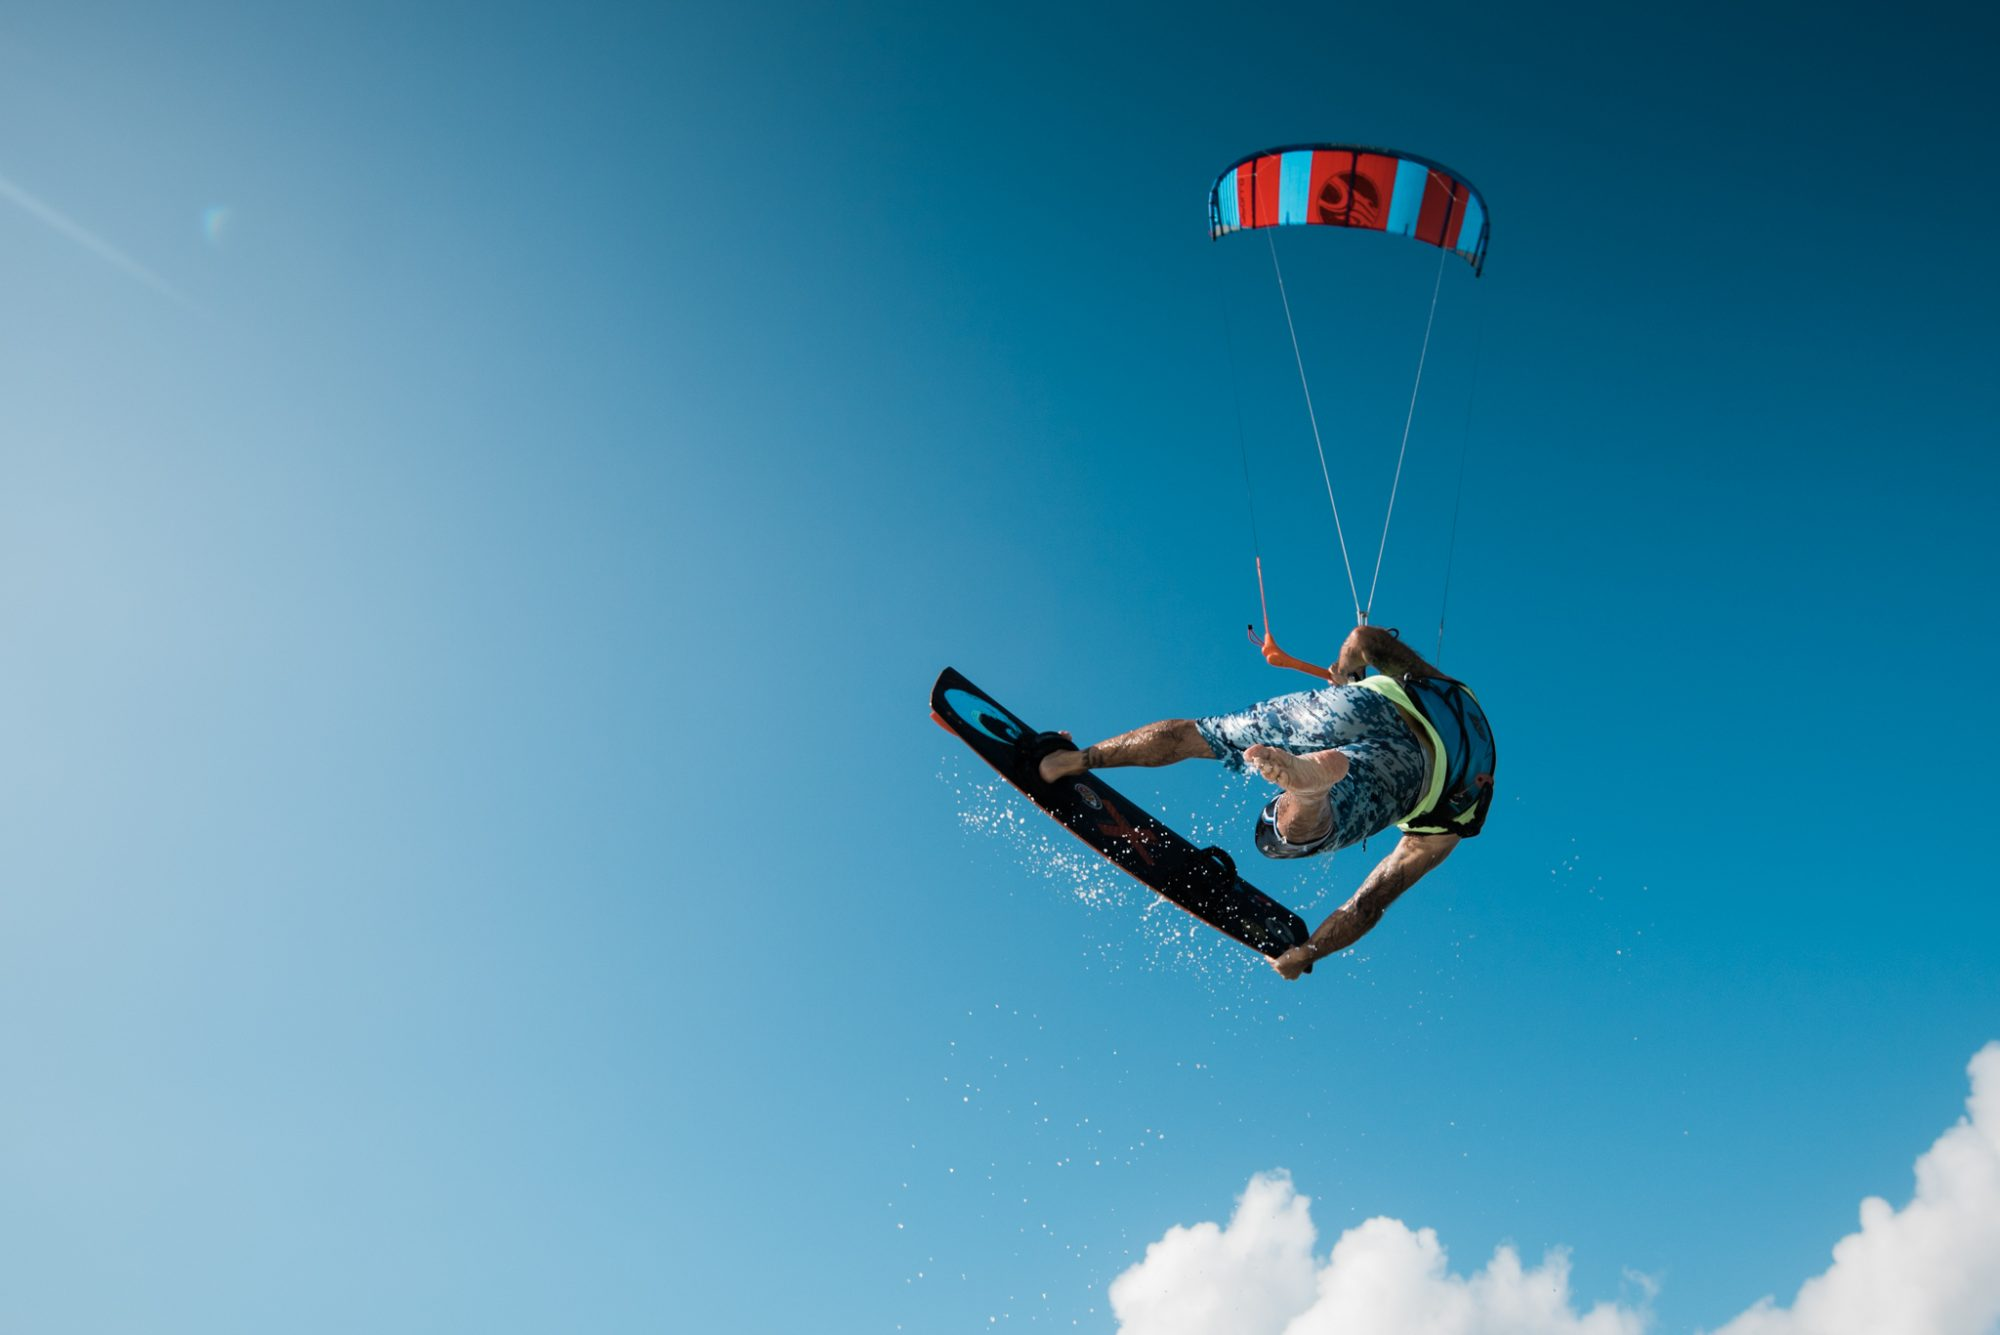 Kiting In Key West Photos 1 6 - Lifestyle Photography - The Florida Keys Way